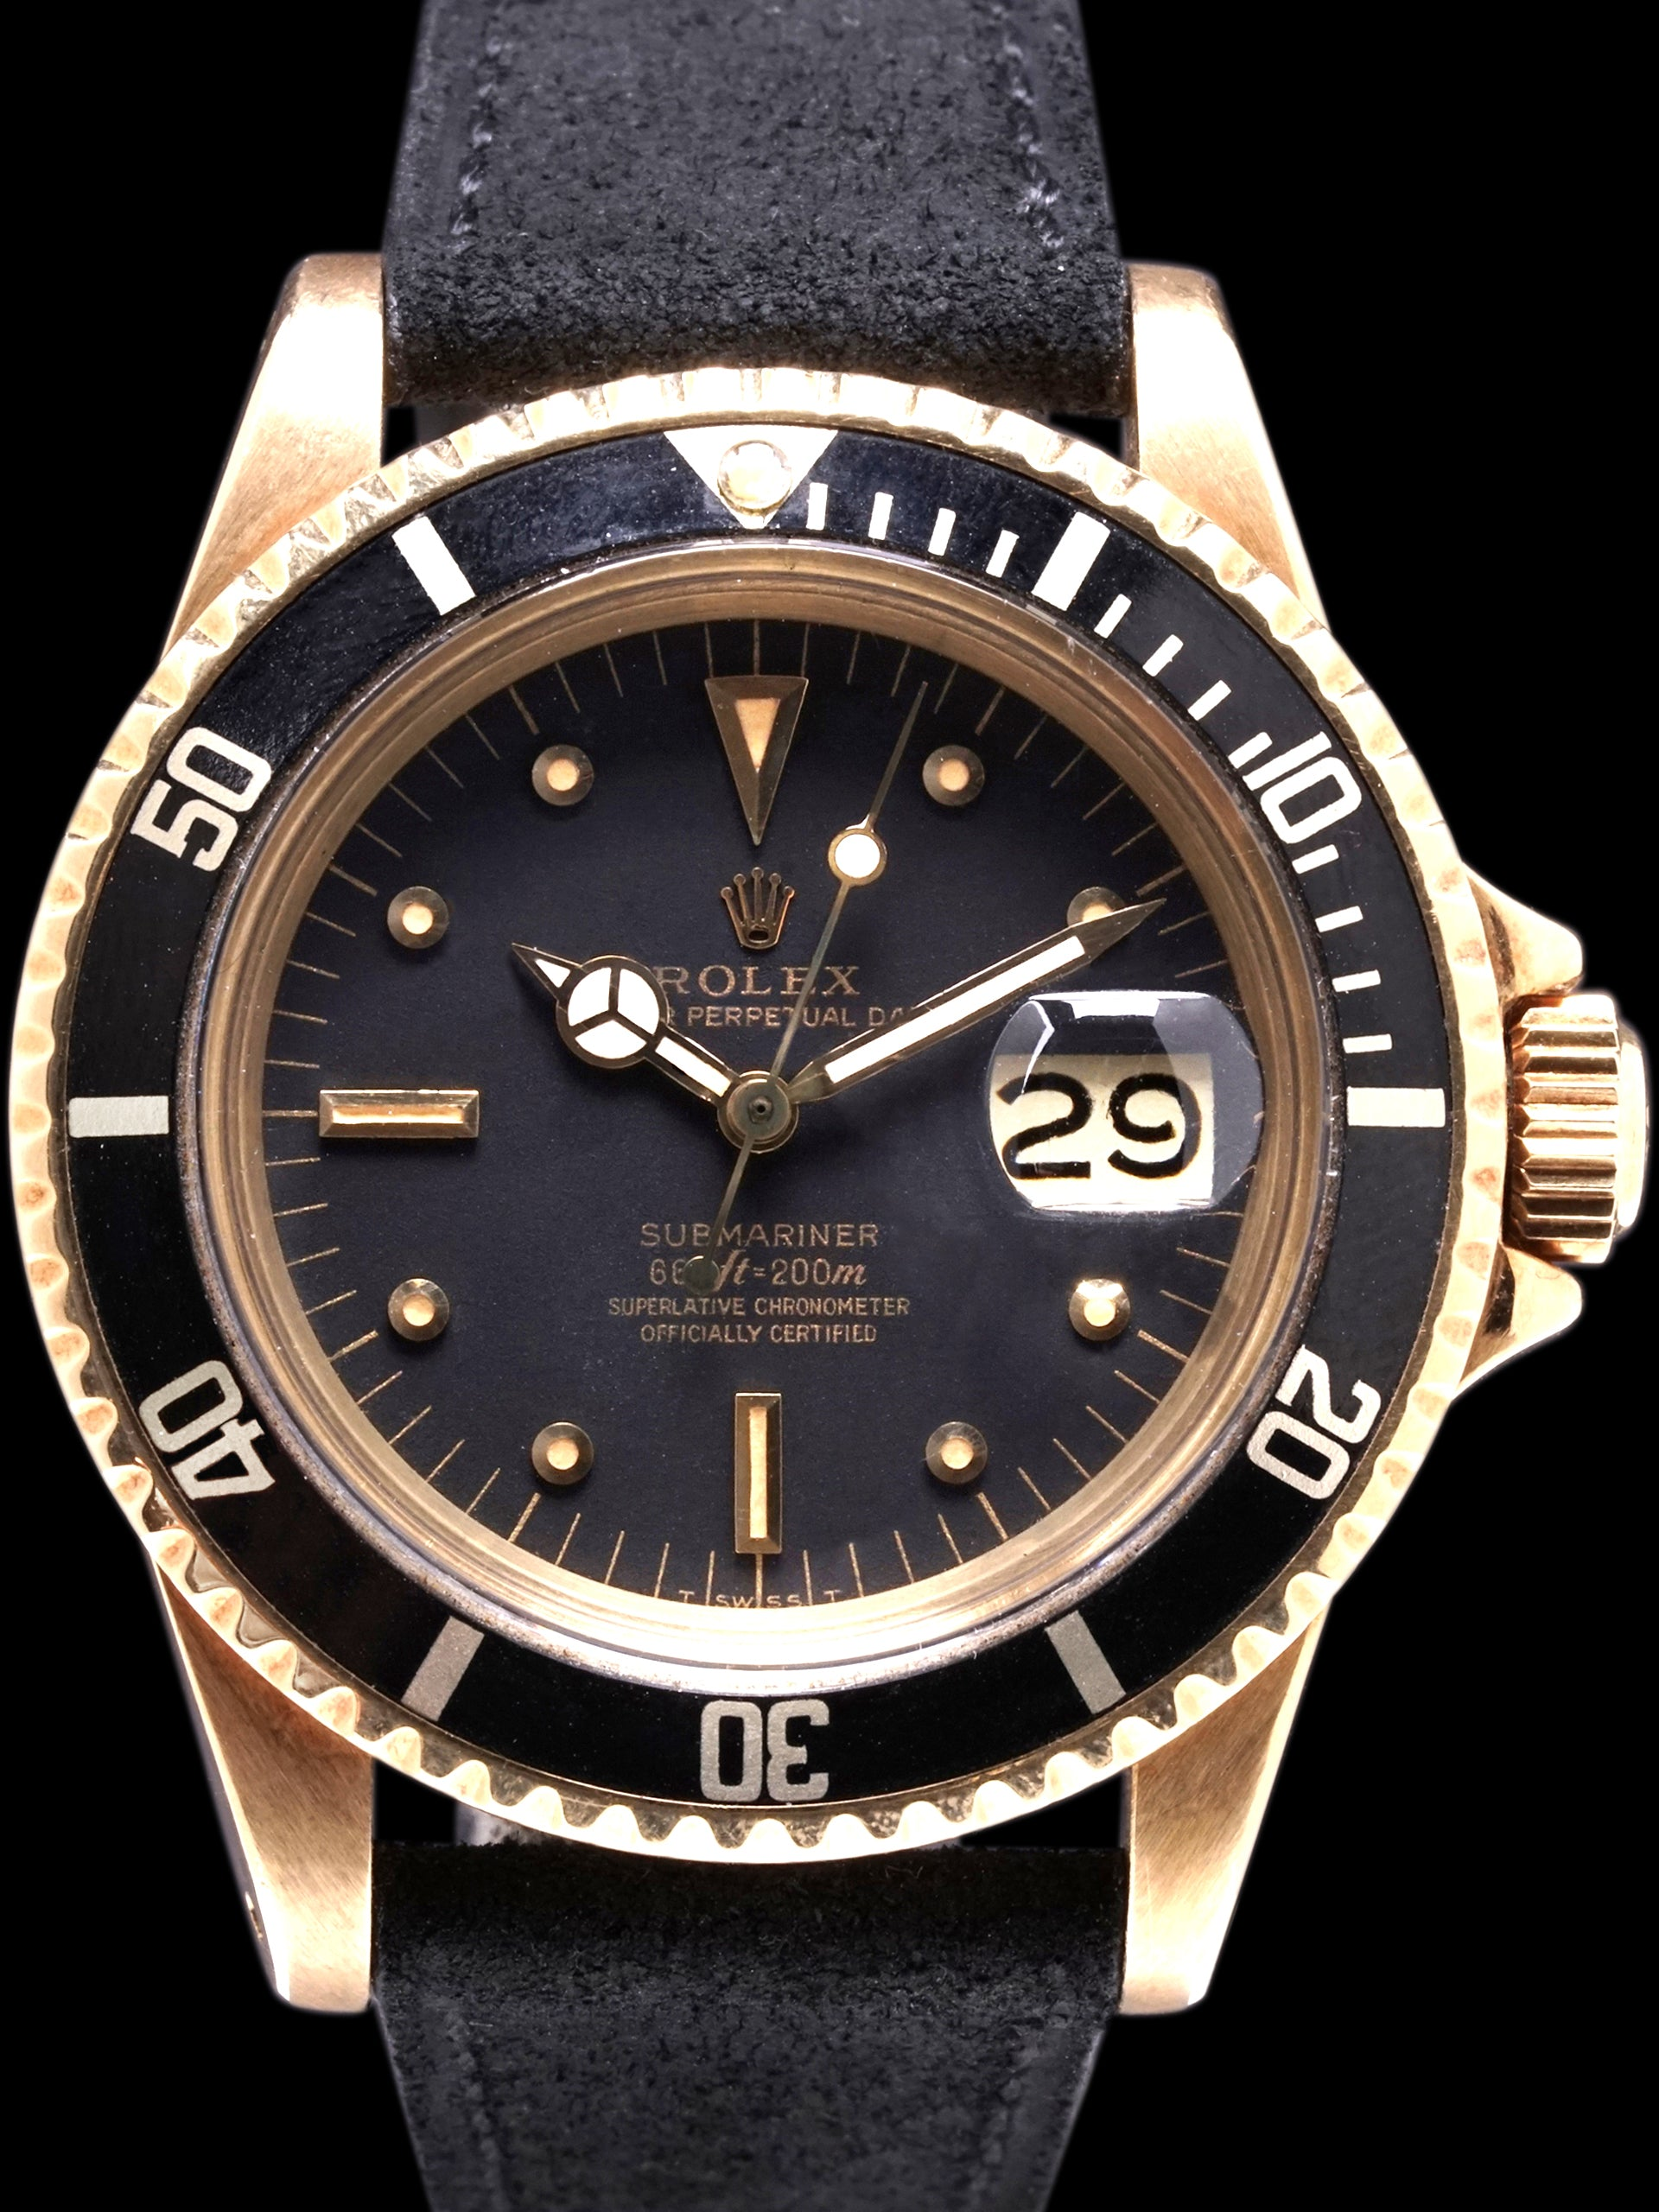 1972 Rolex Submariner (Ref. 1680) 18k YG